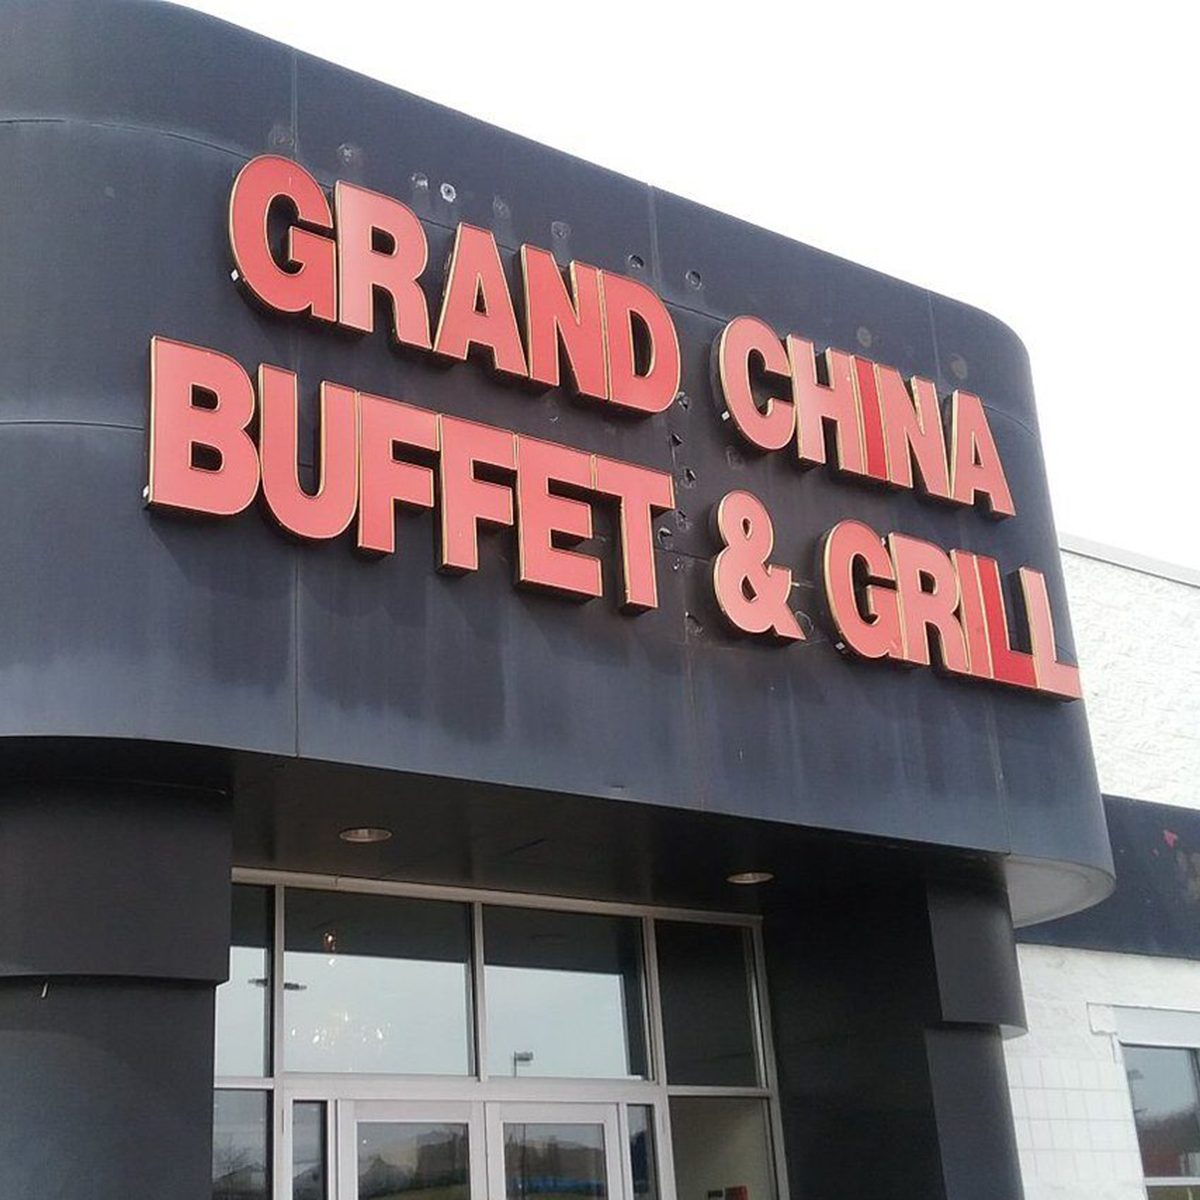 West Virginia: Grand China Buffet and Grill, Clarksburg